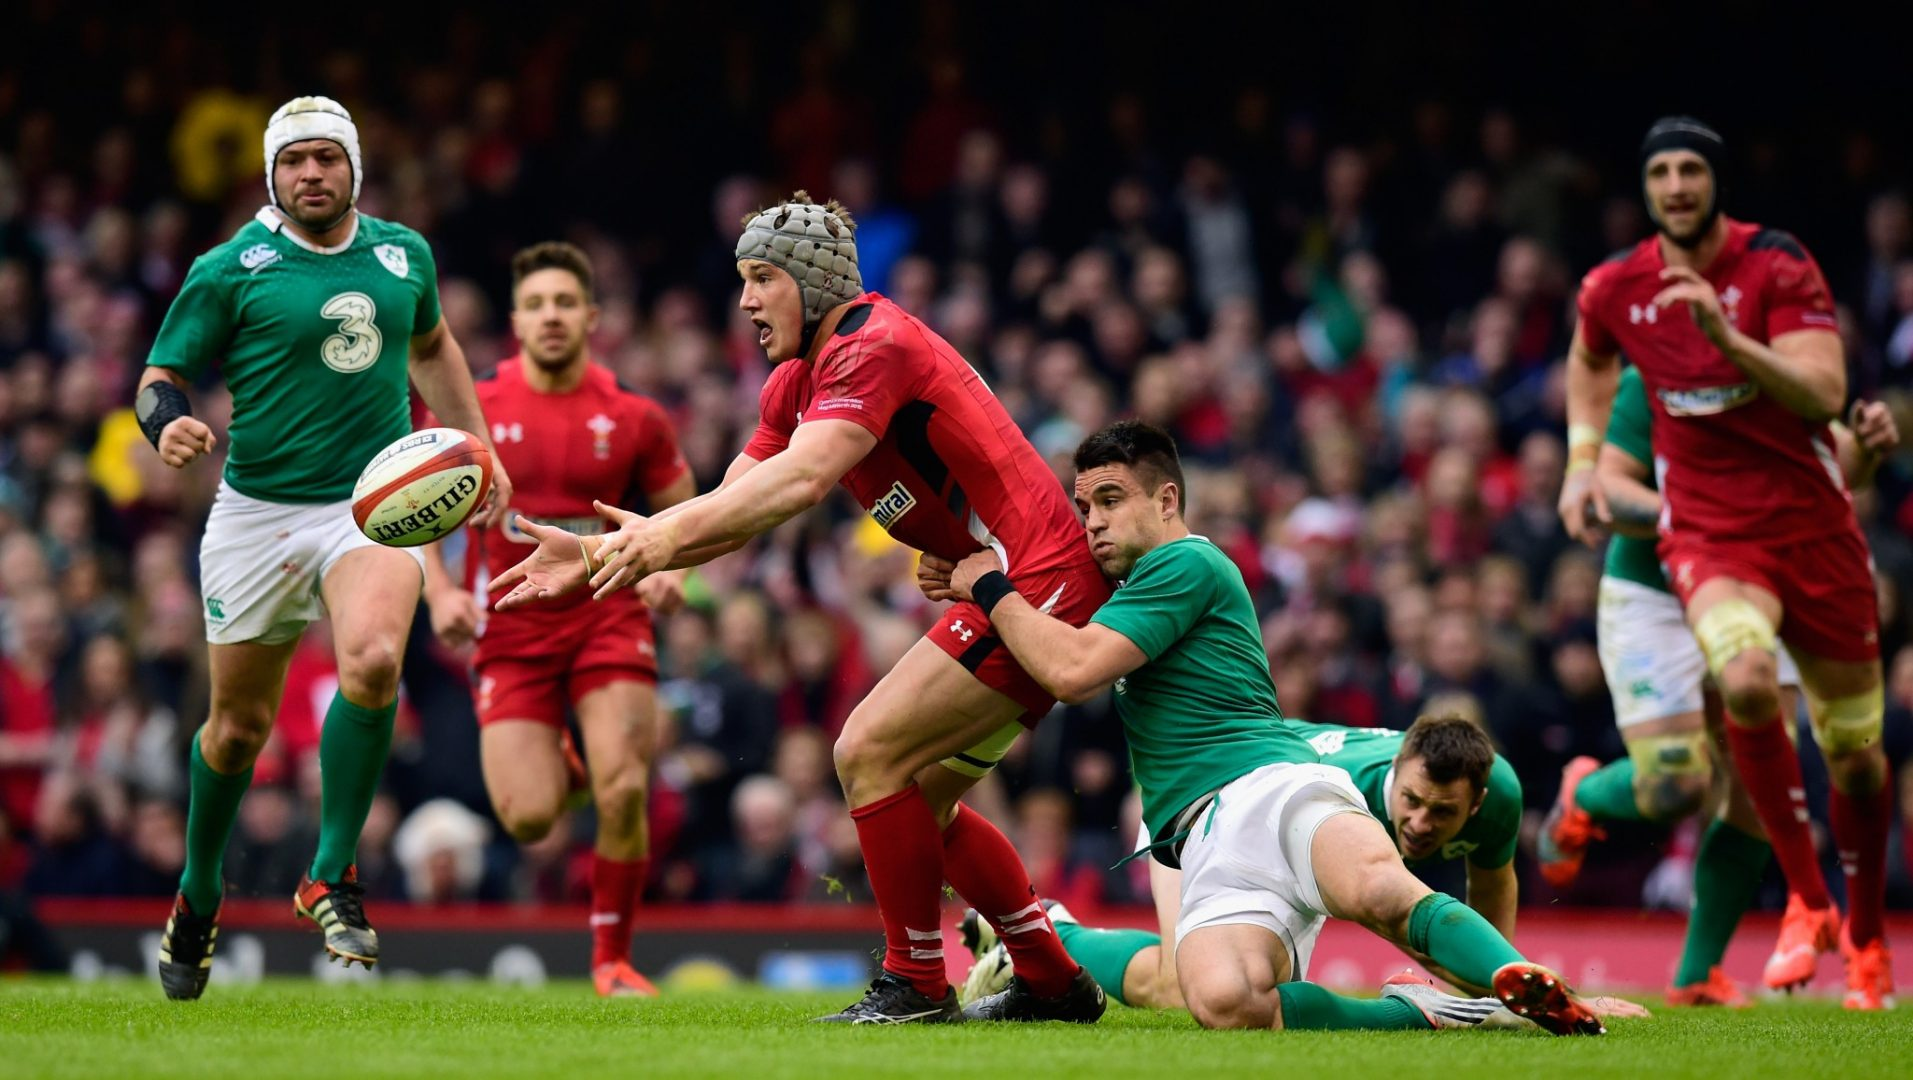 Wales v Ireland in the RBS Six Nations